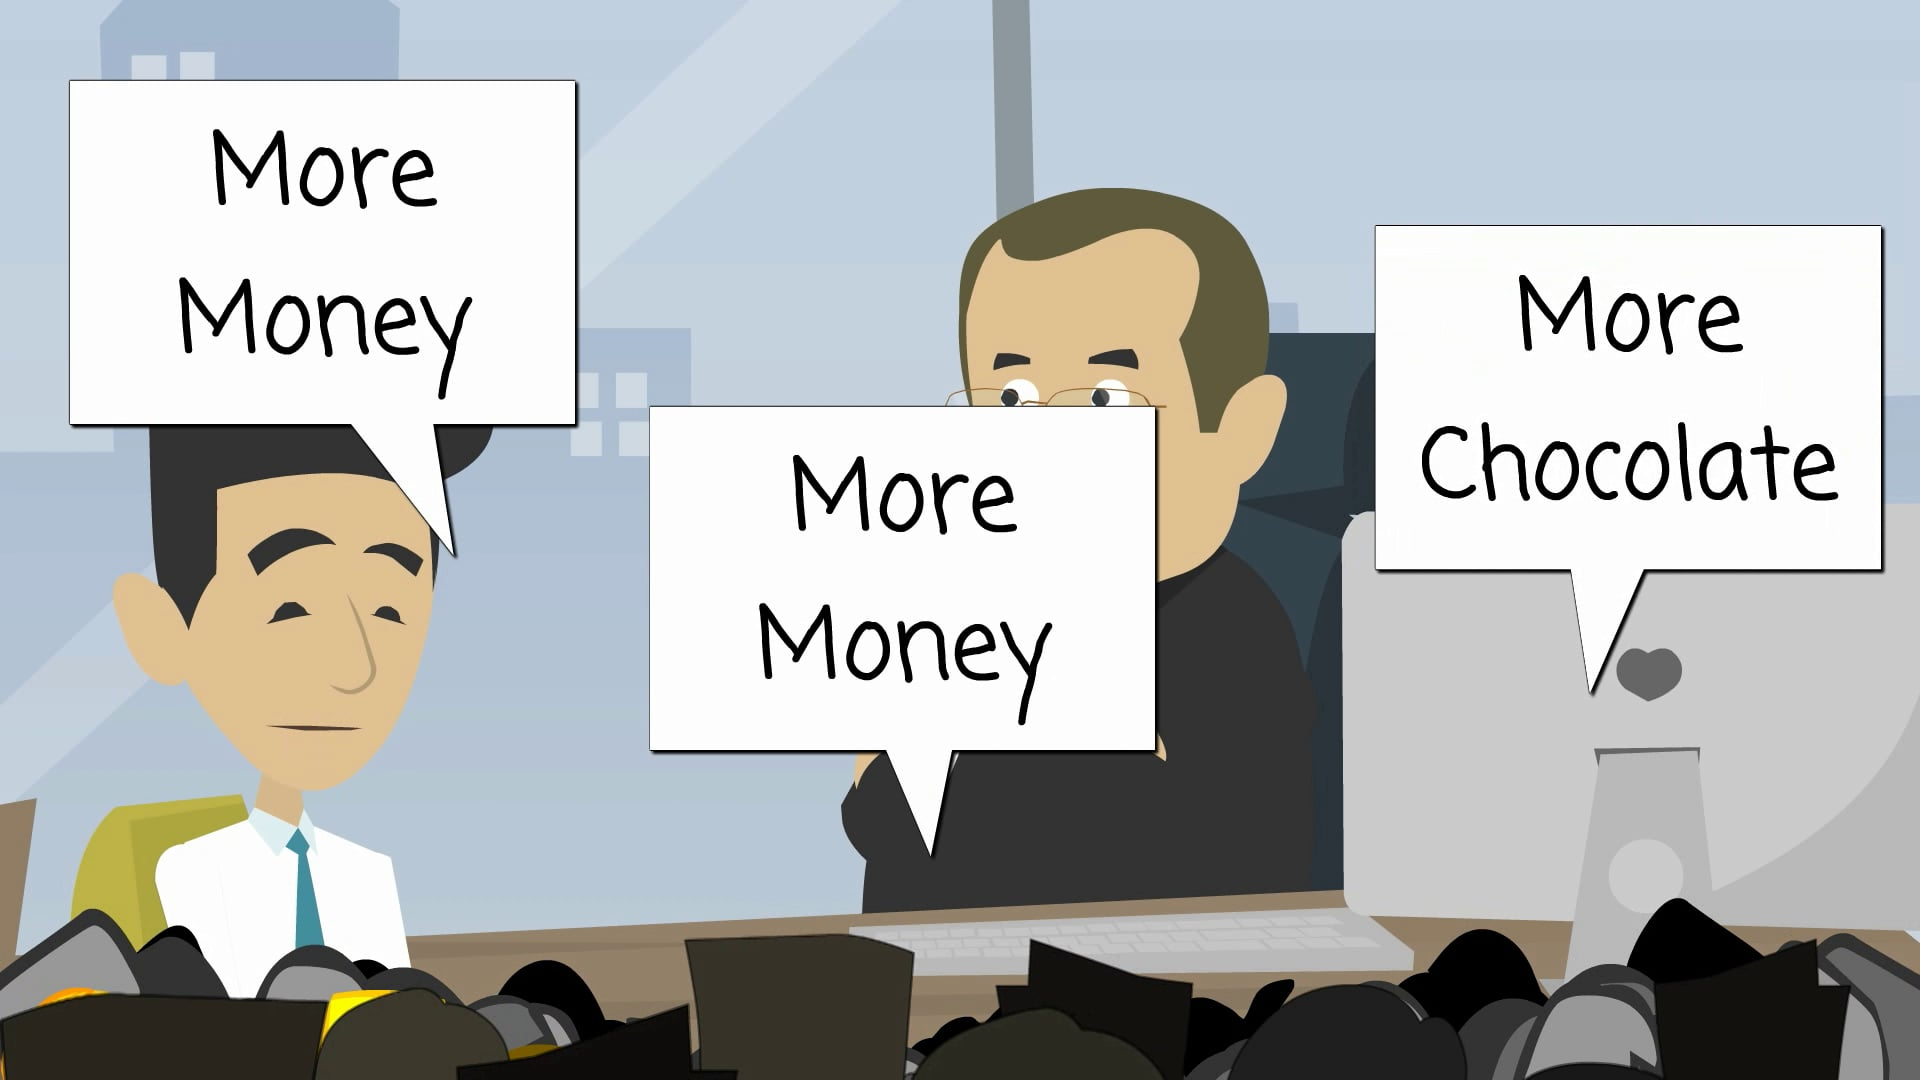 Demystifying Fraud and Corruption - Part 3 - What do people with loads of money want?